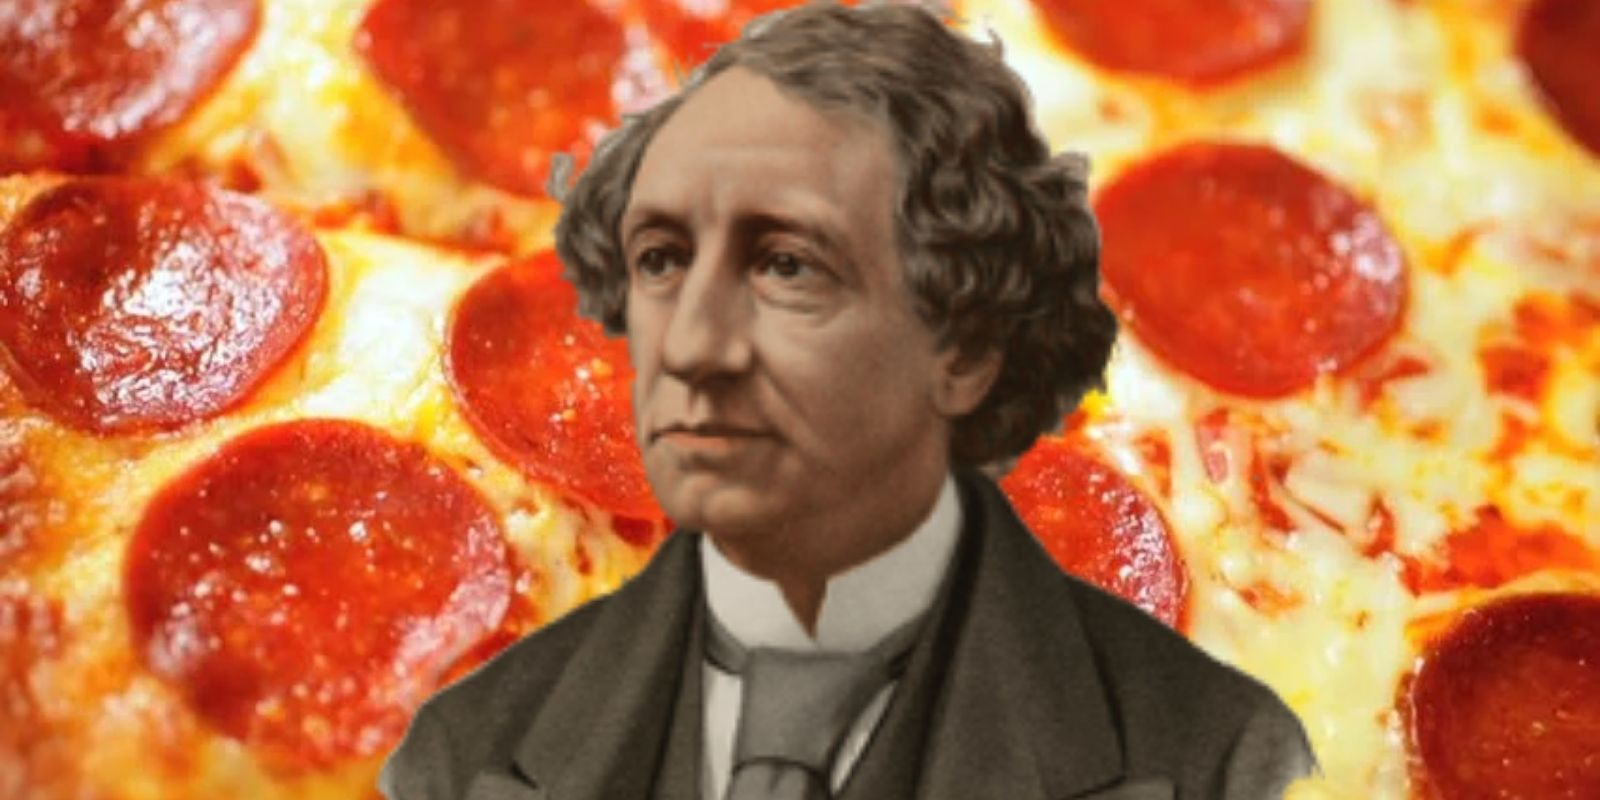 Pizzeria owner says he will no longer accept $10 bills with John A. Macdonald on them